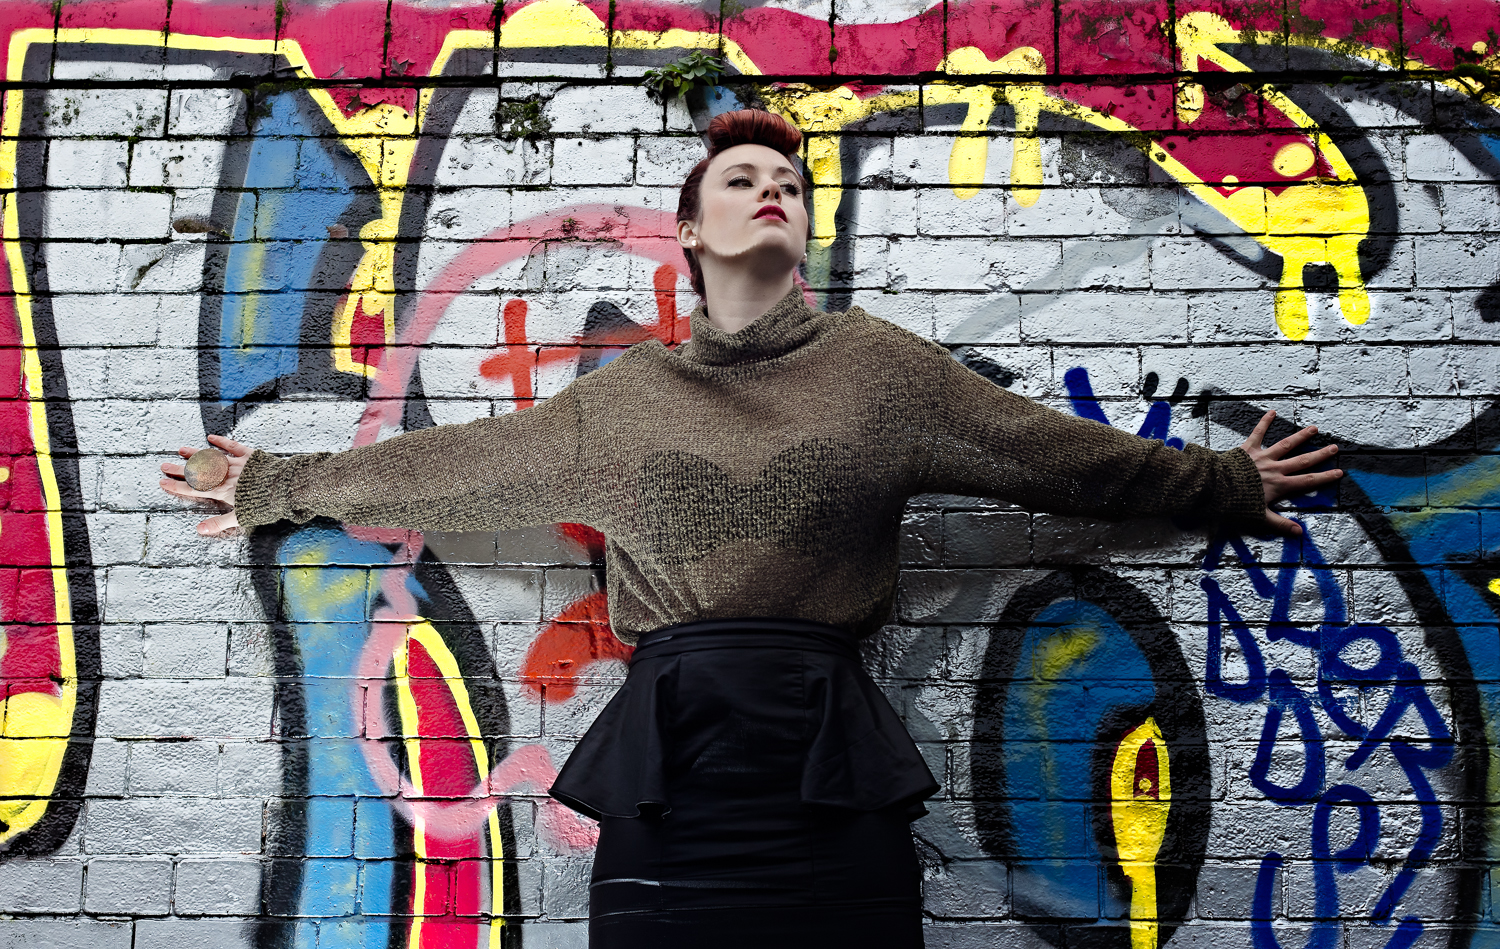 An up and coming Australian pop singer poses at the Banksy tunnel in London, with her eye catching red hair contrasting with the yello graffitied wall